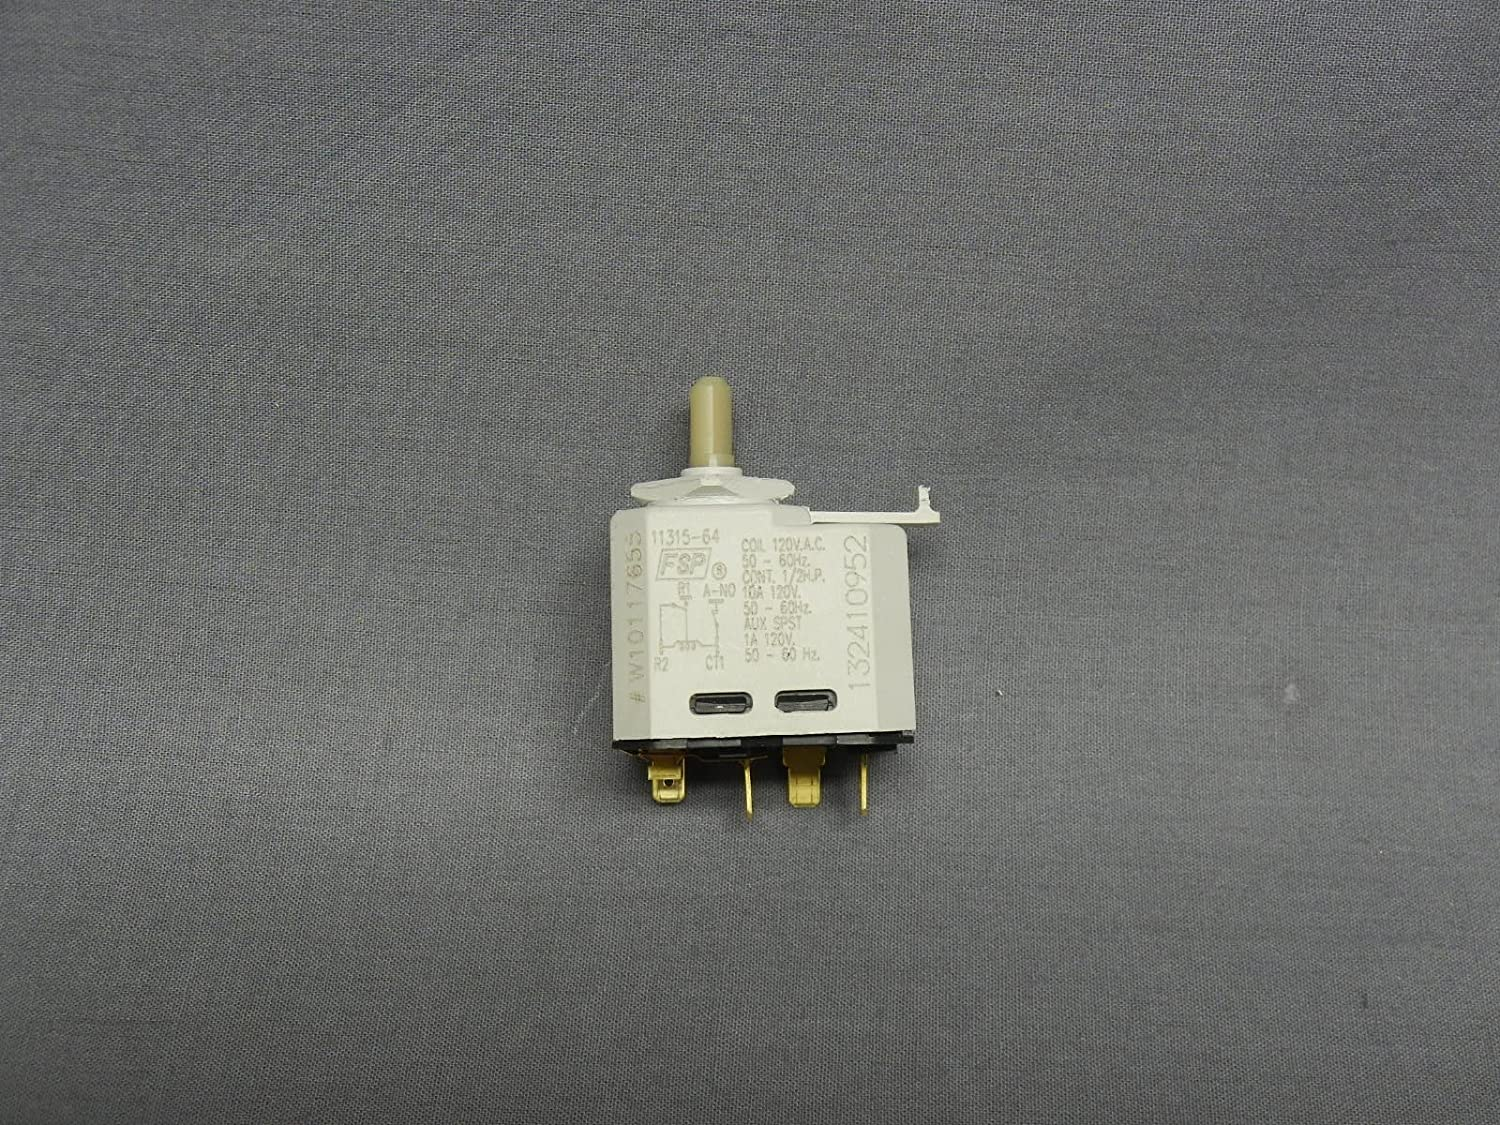 Maytag W10117655 Dryer Push To Start Switch Home Diagram Parts List For Model Pye2300ayw Maytagparts Dryerparts Improvement